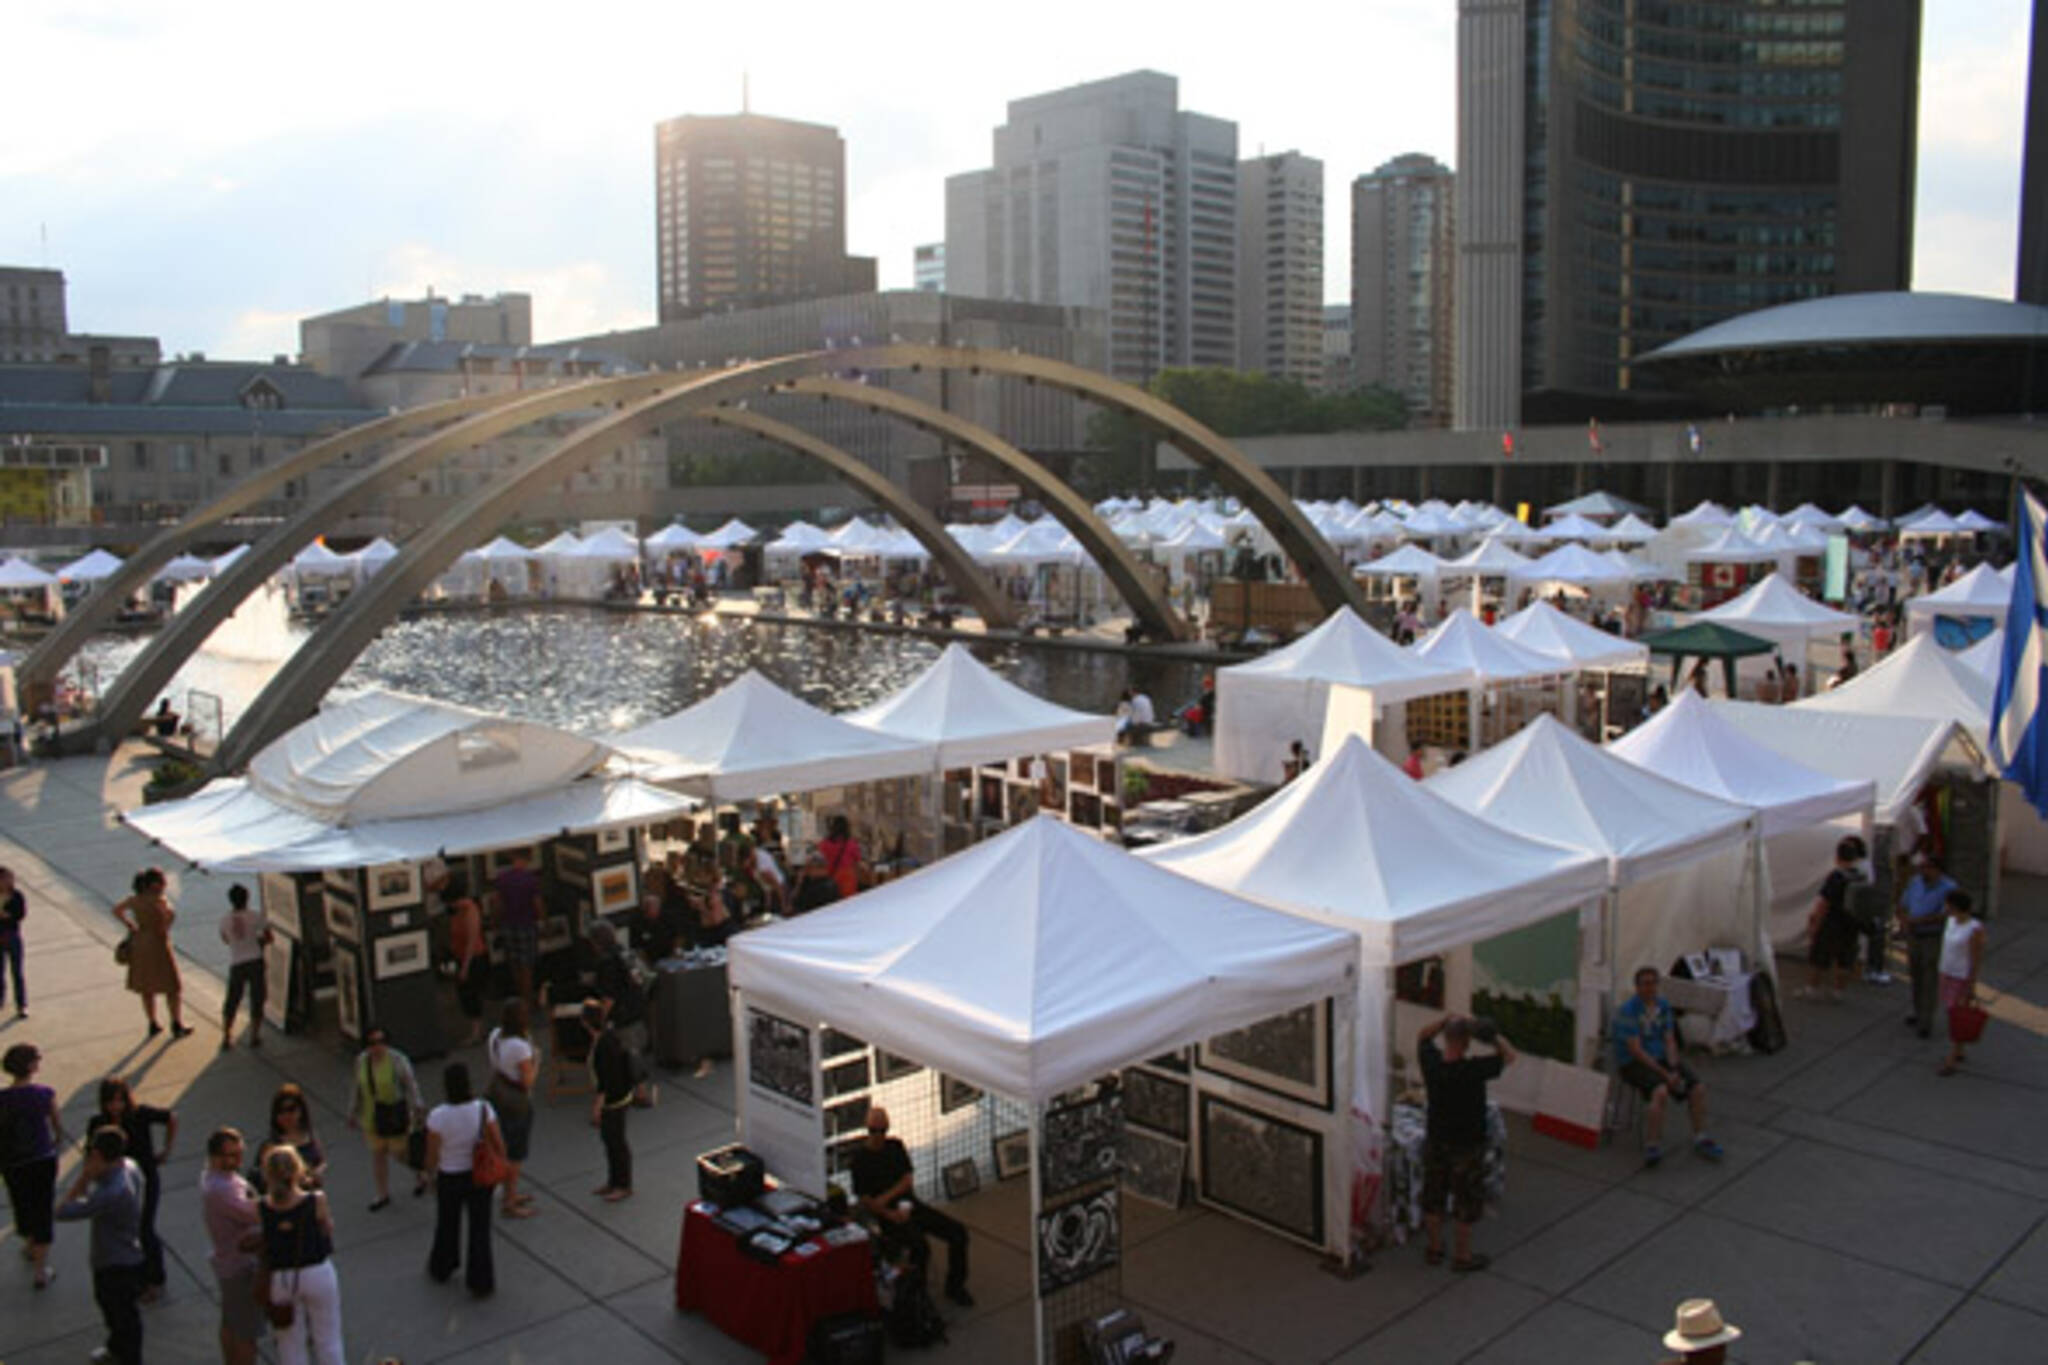 Toronto Outdoor Art Exhibition 2011